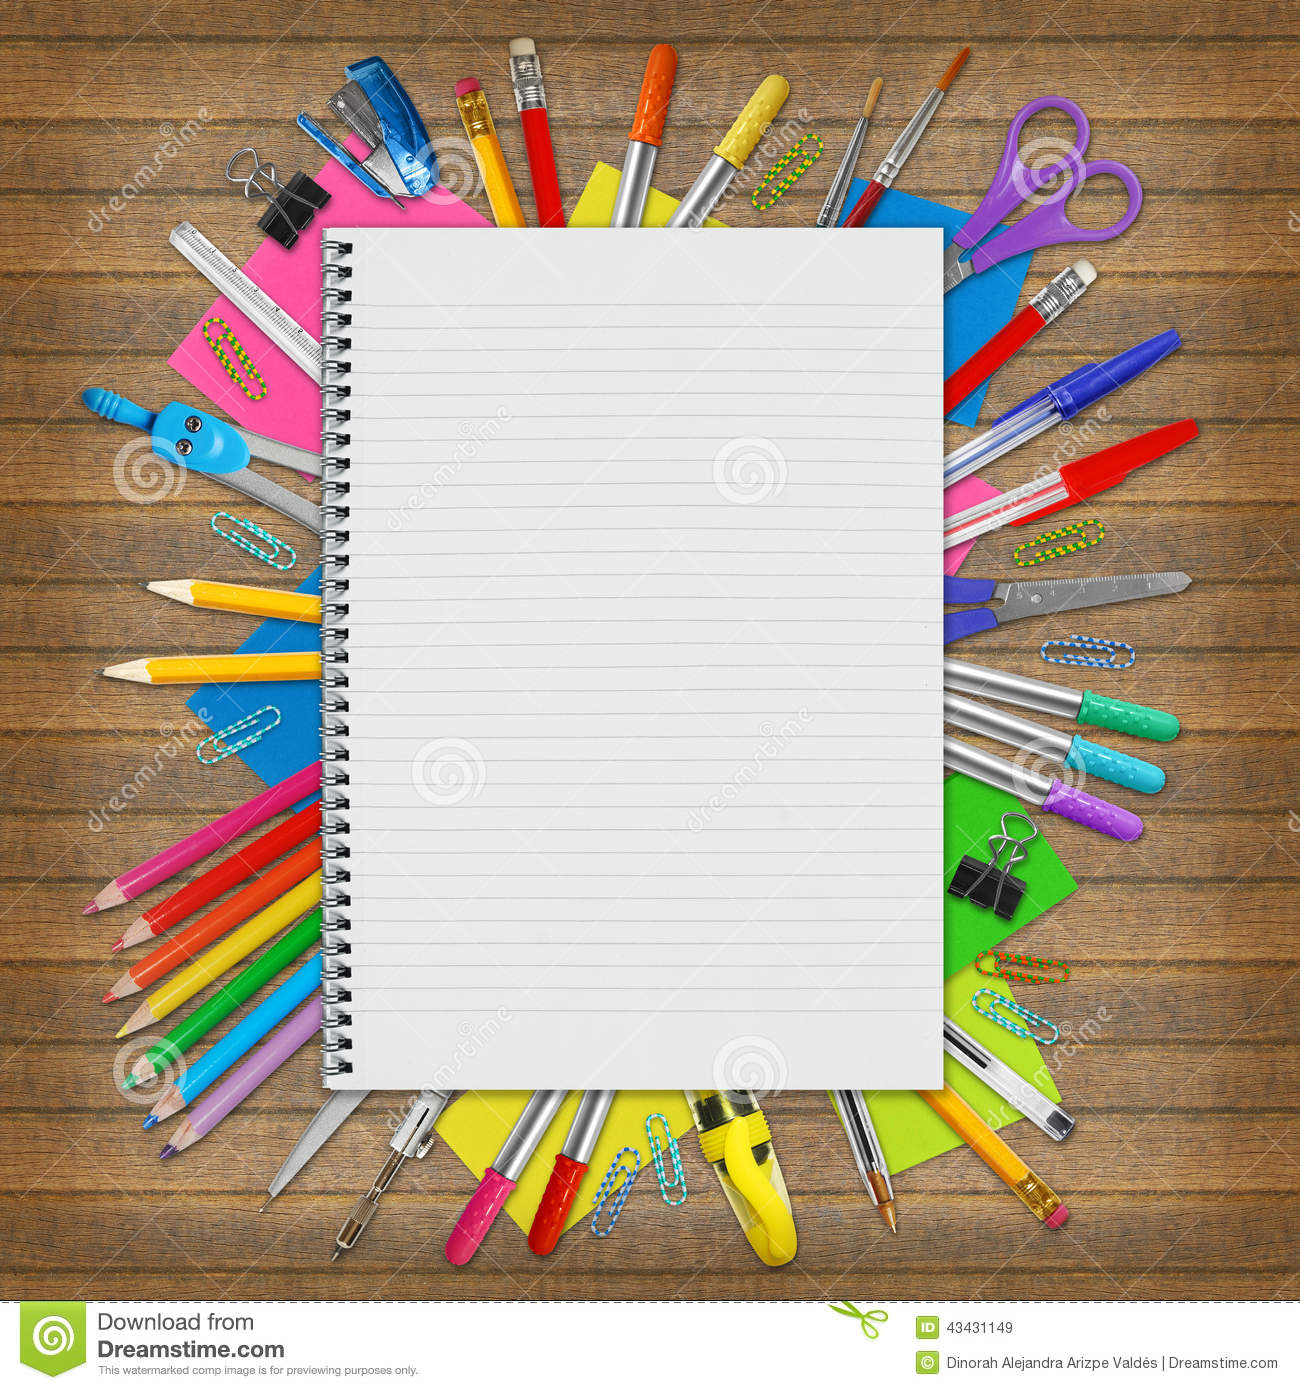 Notebook And Education Border Stock Image - Image: 43431149